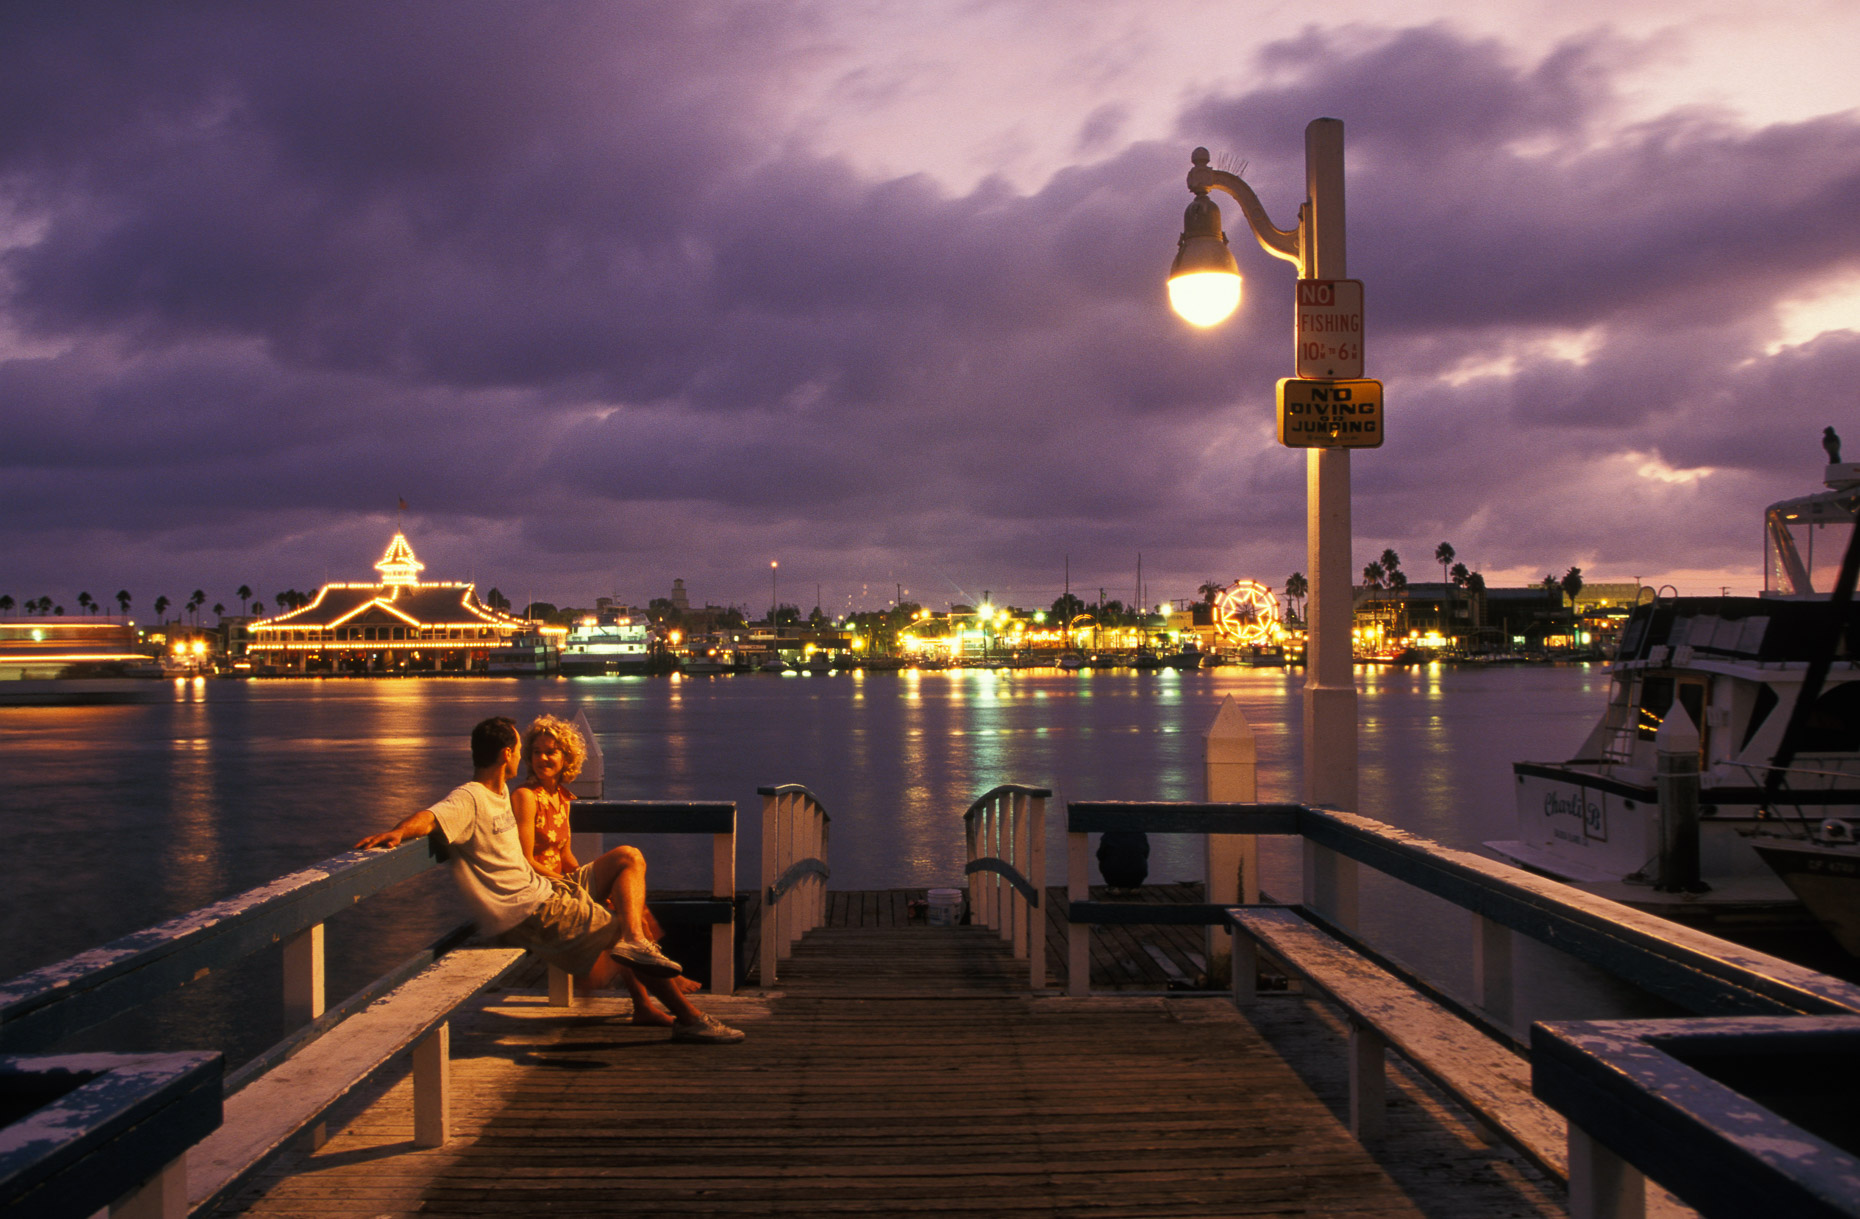 Man and woman sitting on bench on pier with sunset in background by David Zaitz.